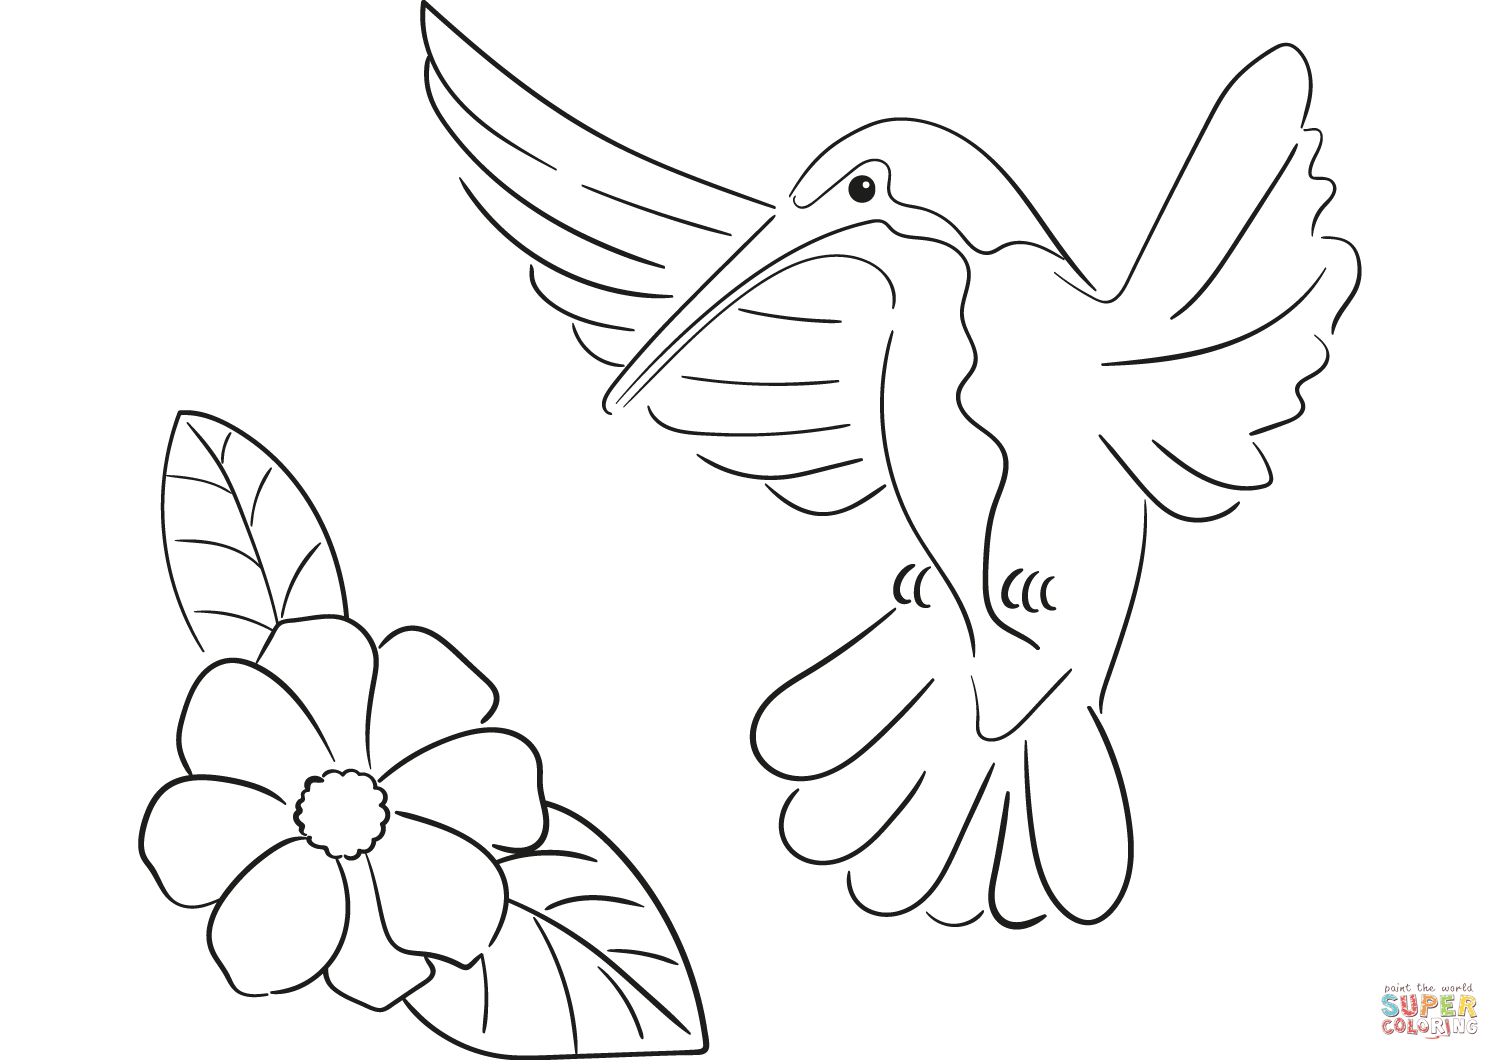 free printable hummingbird coloring pages hummingbird coloring page coloring home printable hummingbird free coloring pages